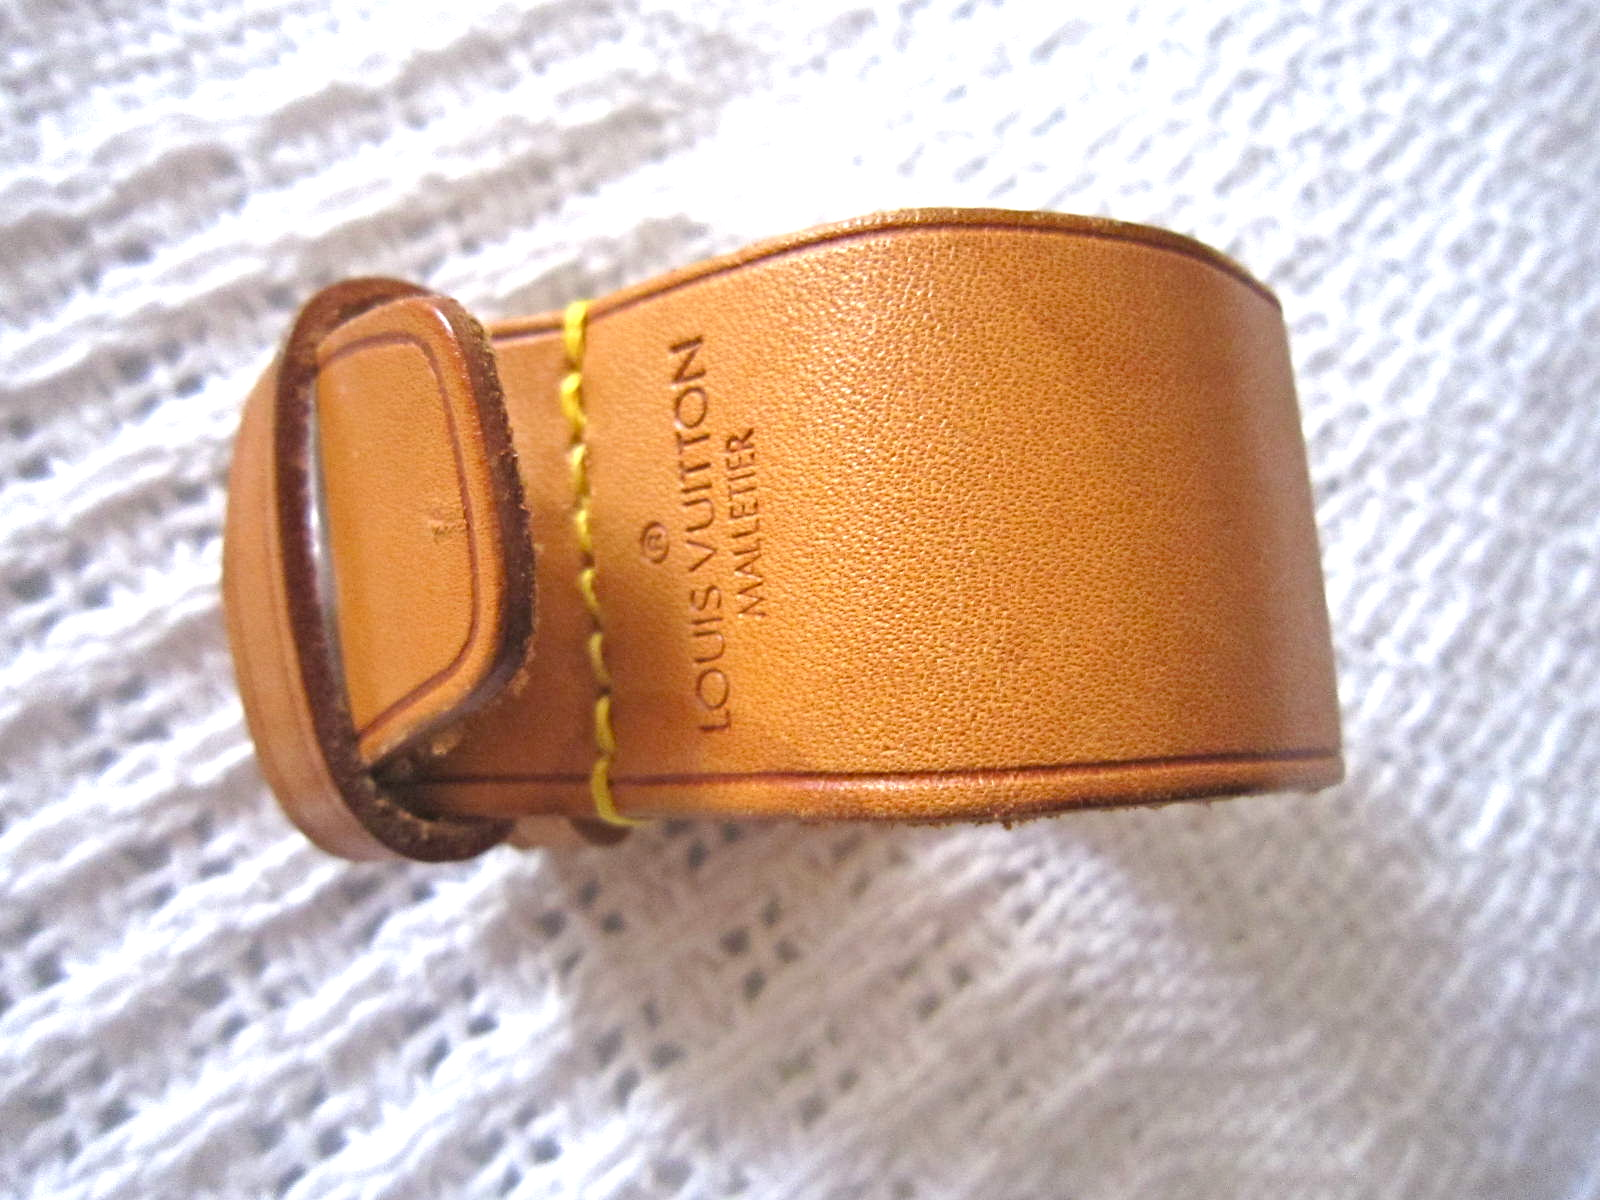 d5a56e6b10b8 Louis Vuitton Leather Strap Holder for Keepall - Luxurylana Boutique